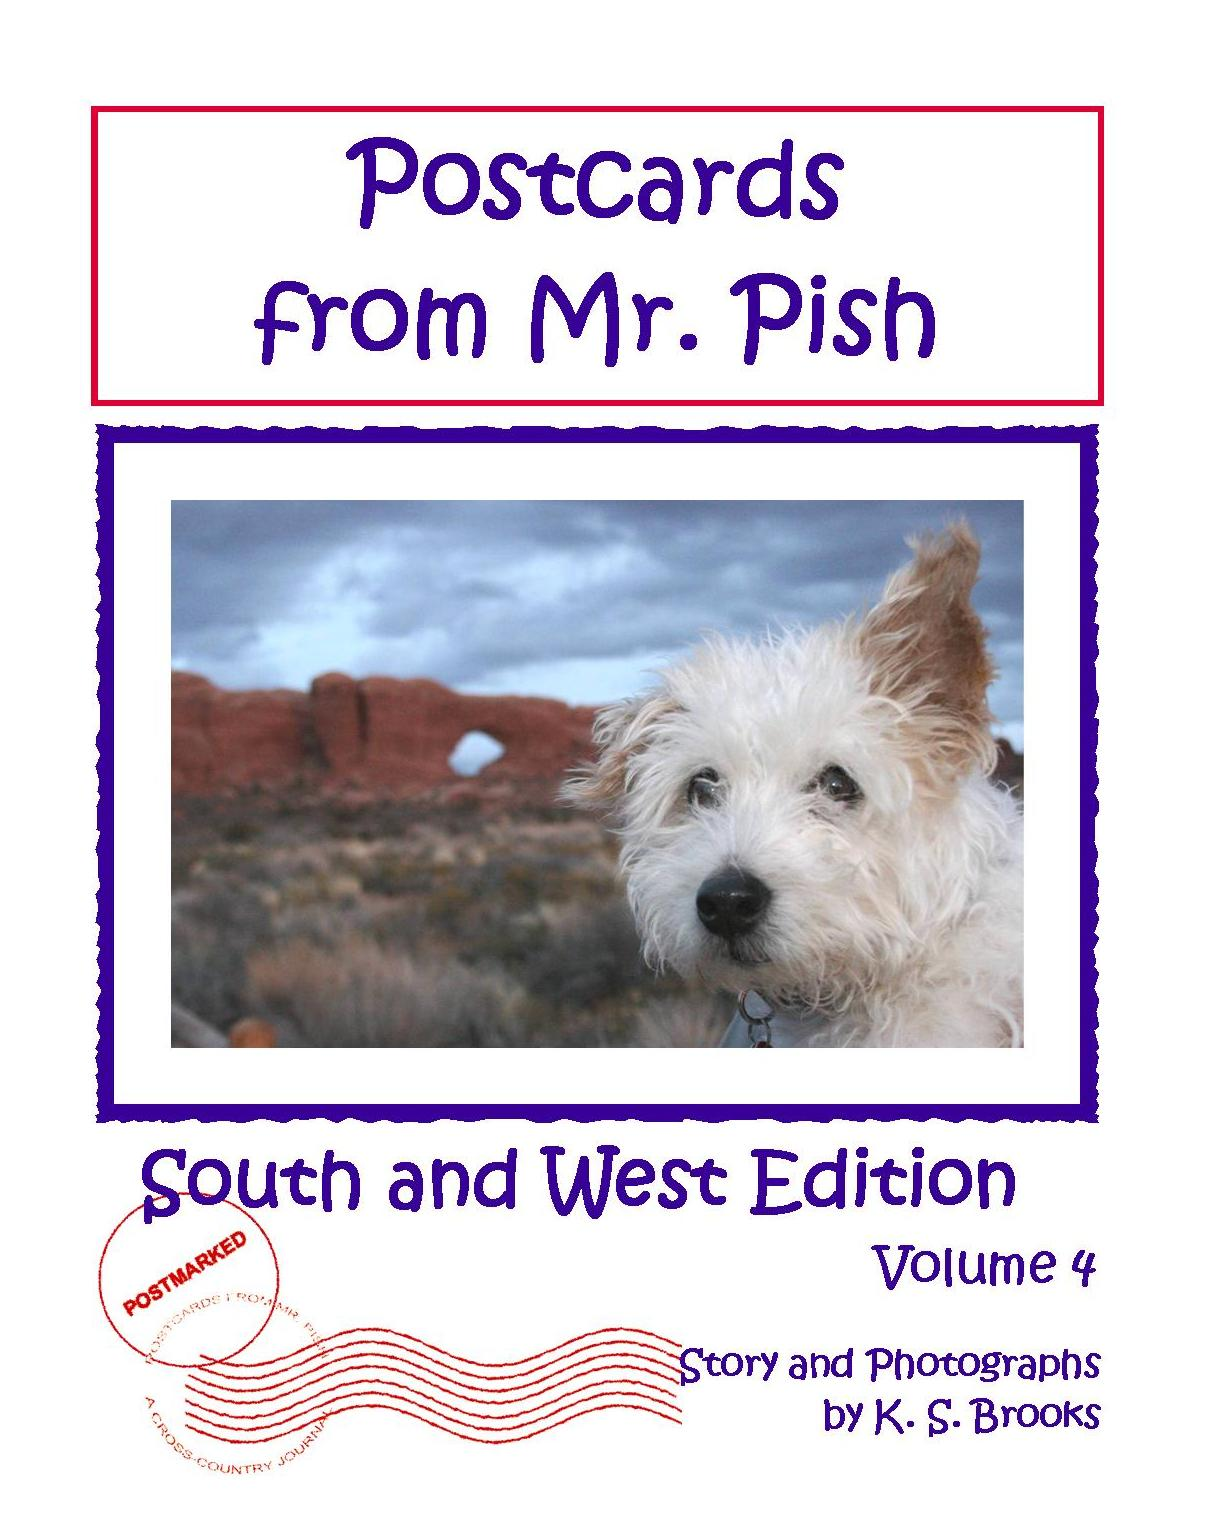 Postcards from Mr. Pish South & West Edition